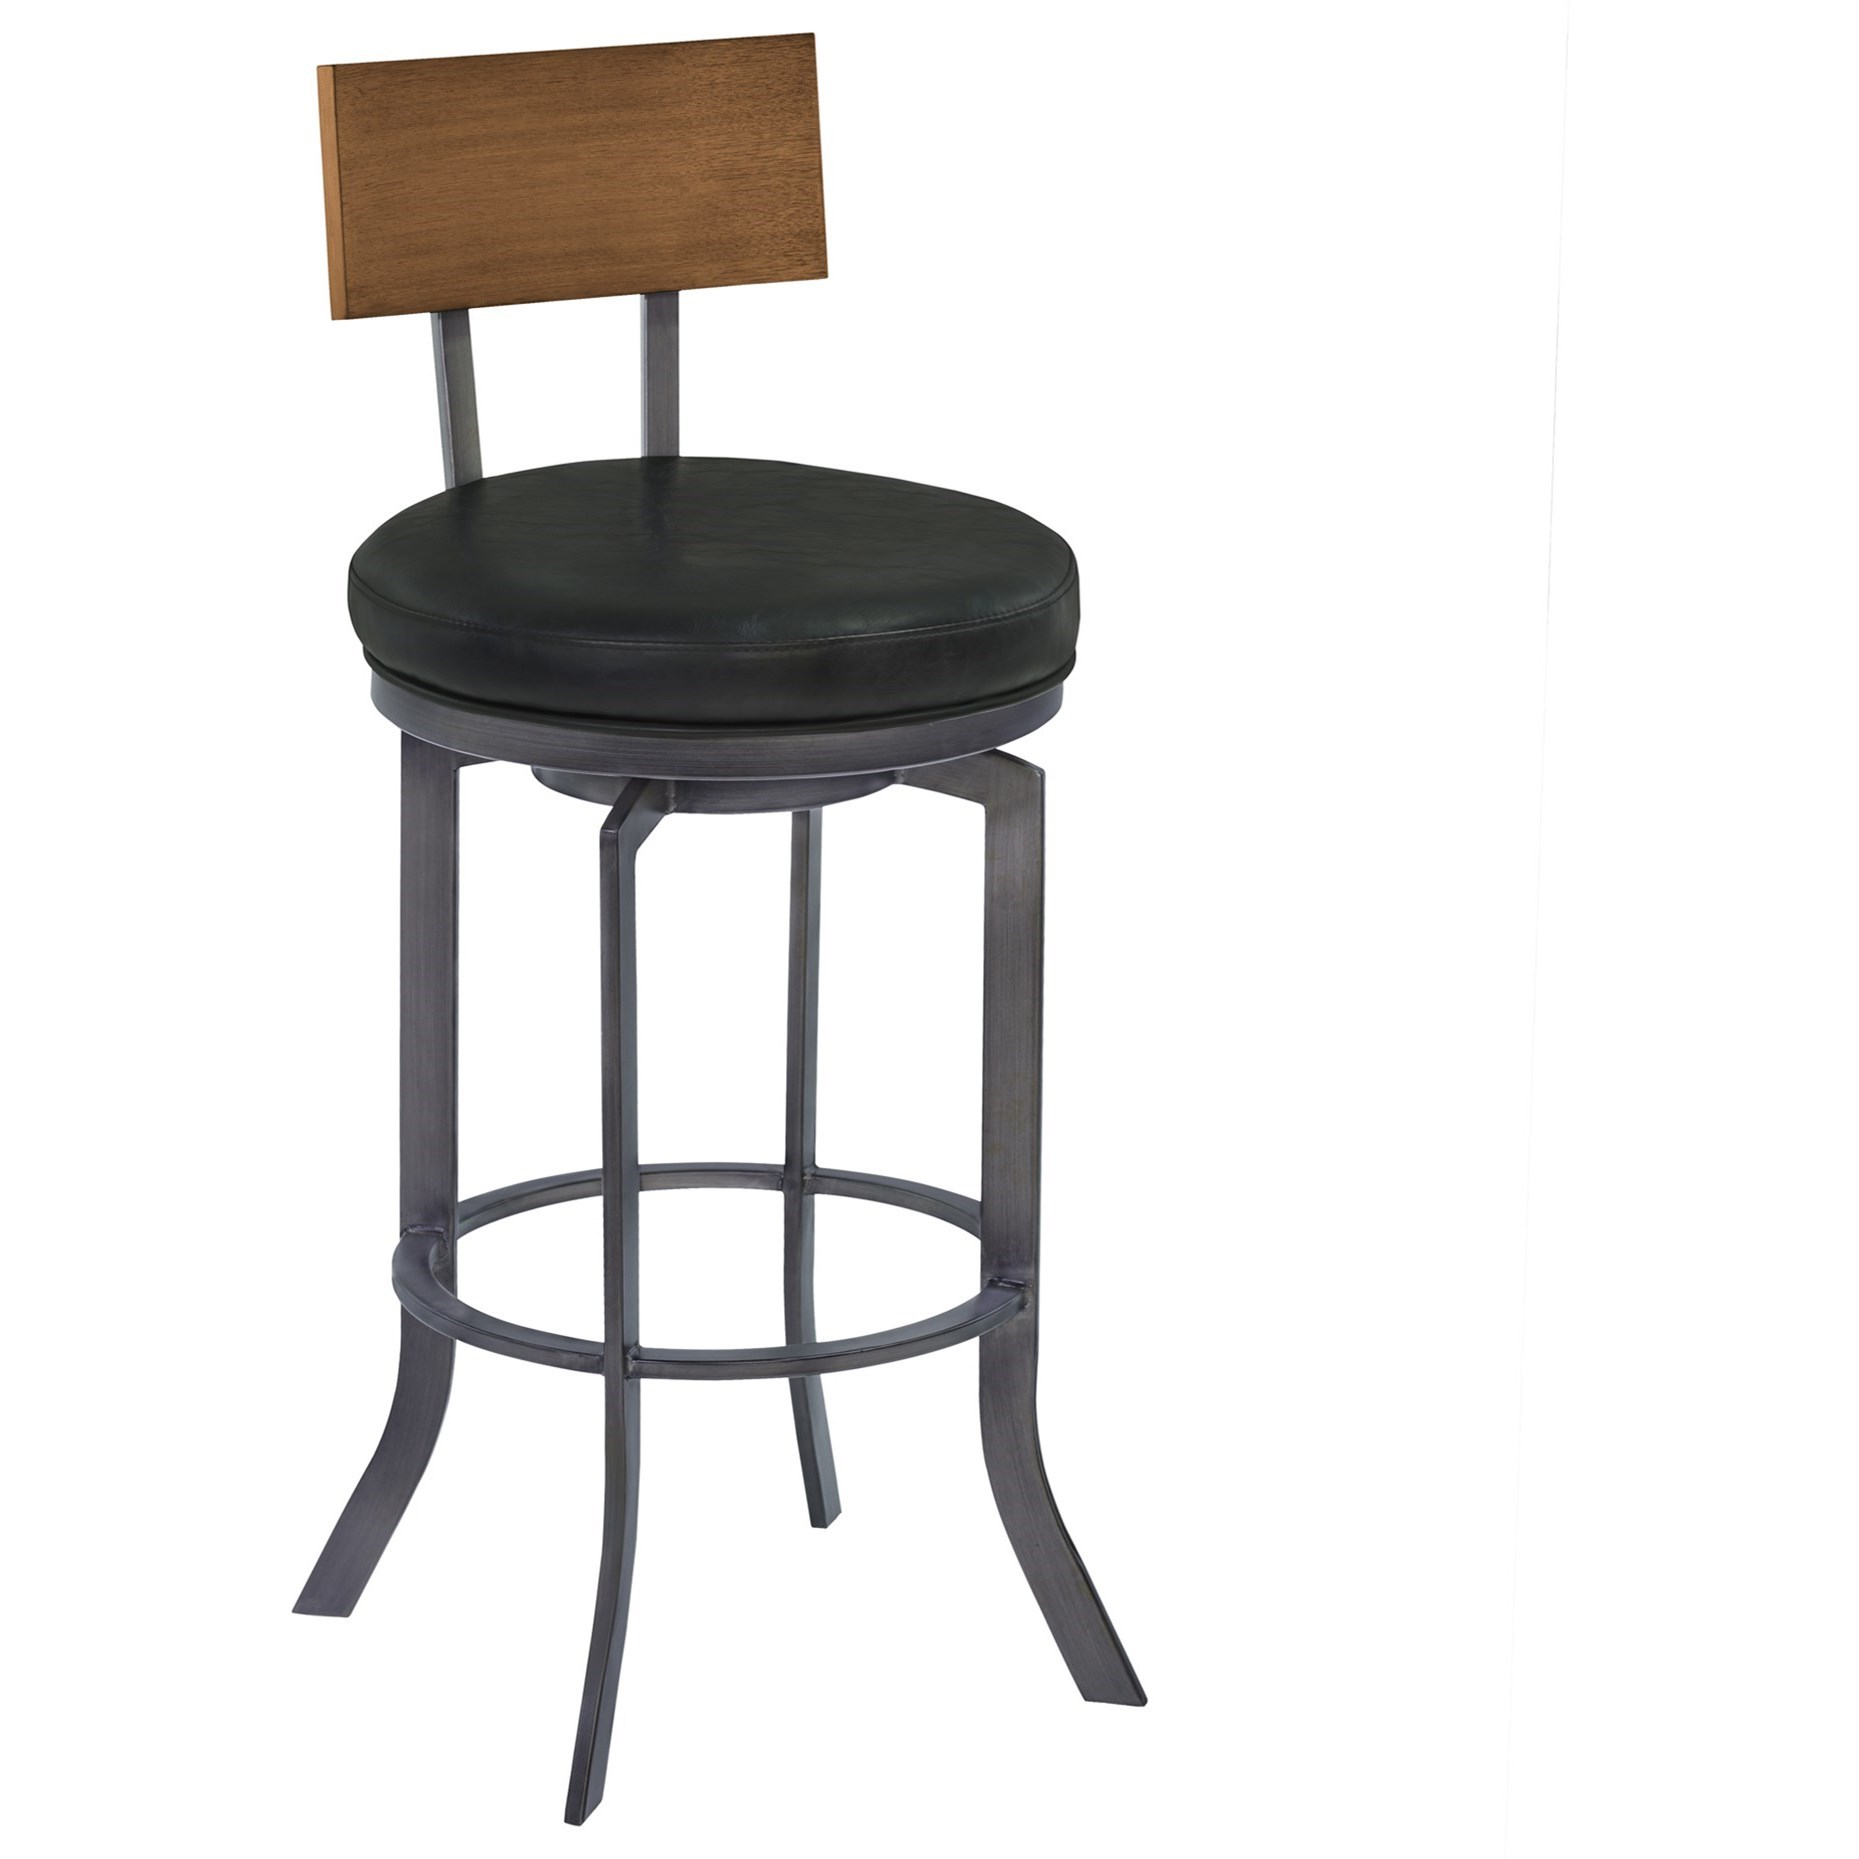 "Ojai 30"" Bar Height Metal Swivel Barstool by Armen Living at Michael Alan Furniture & Design"